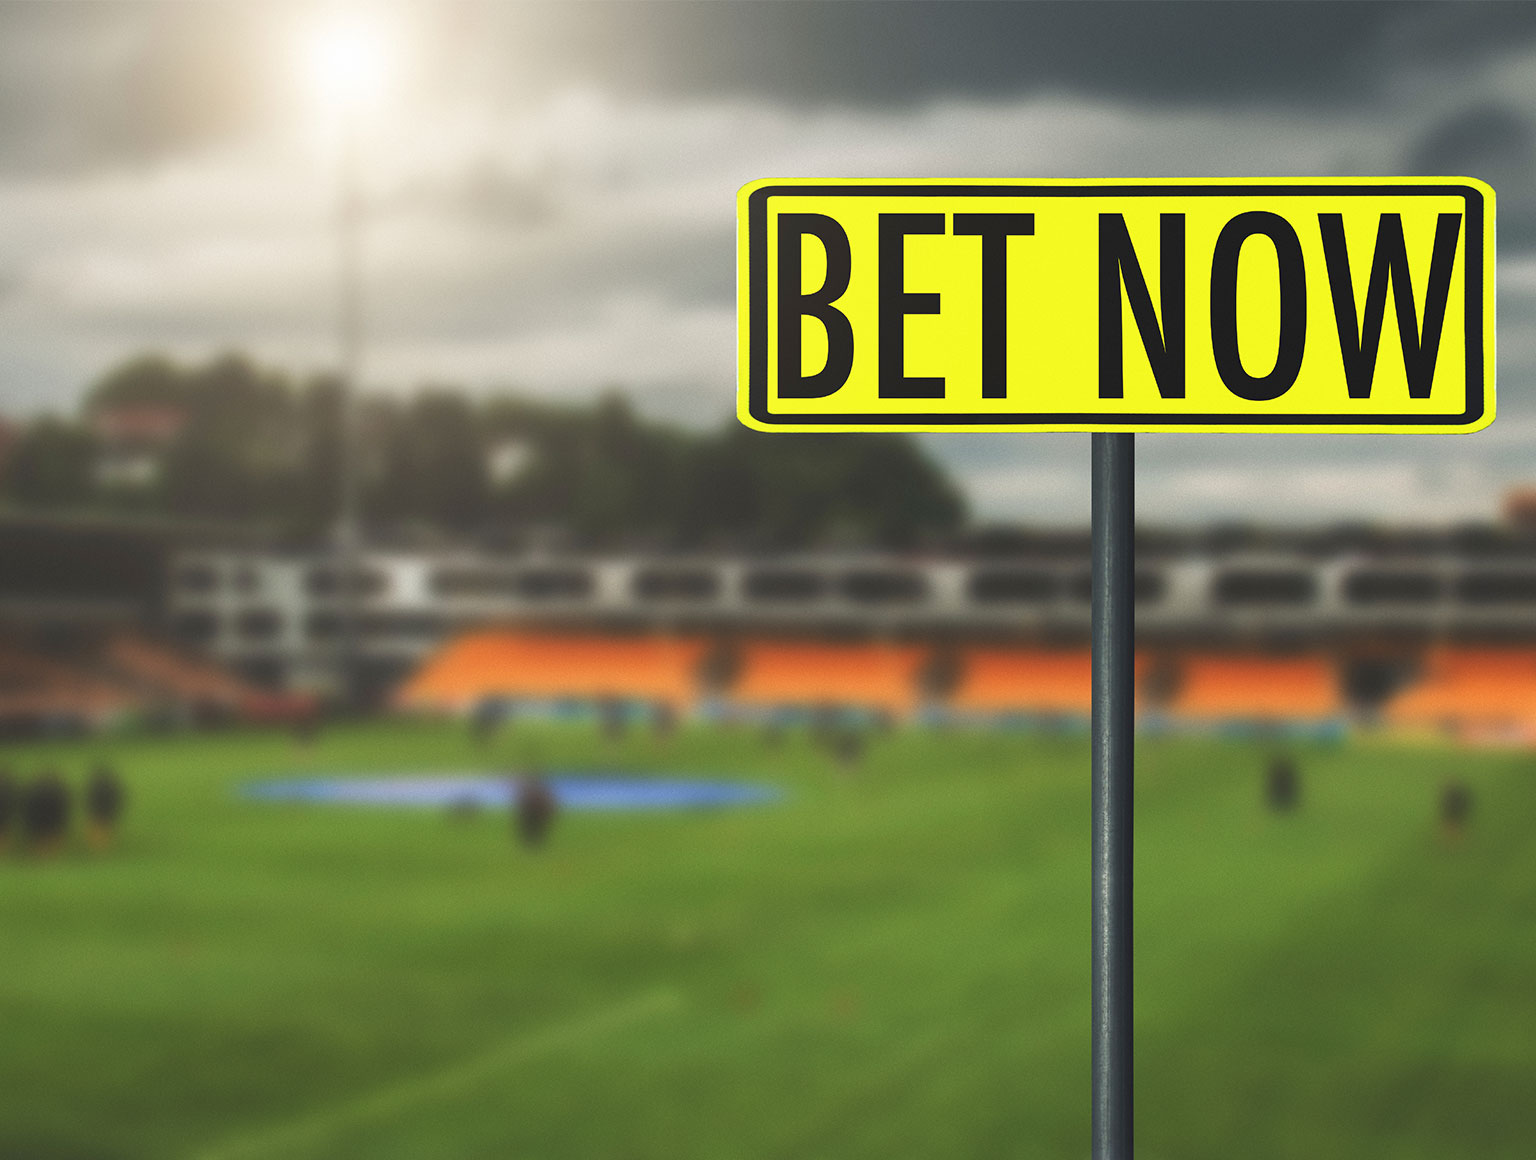 Prominent sign in foregound saying 'Bet now' and blurry sports field in background